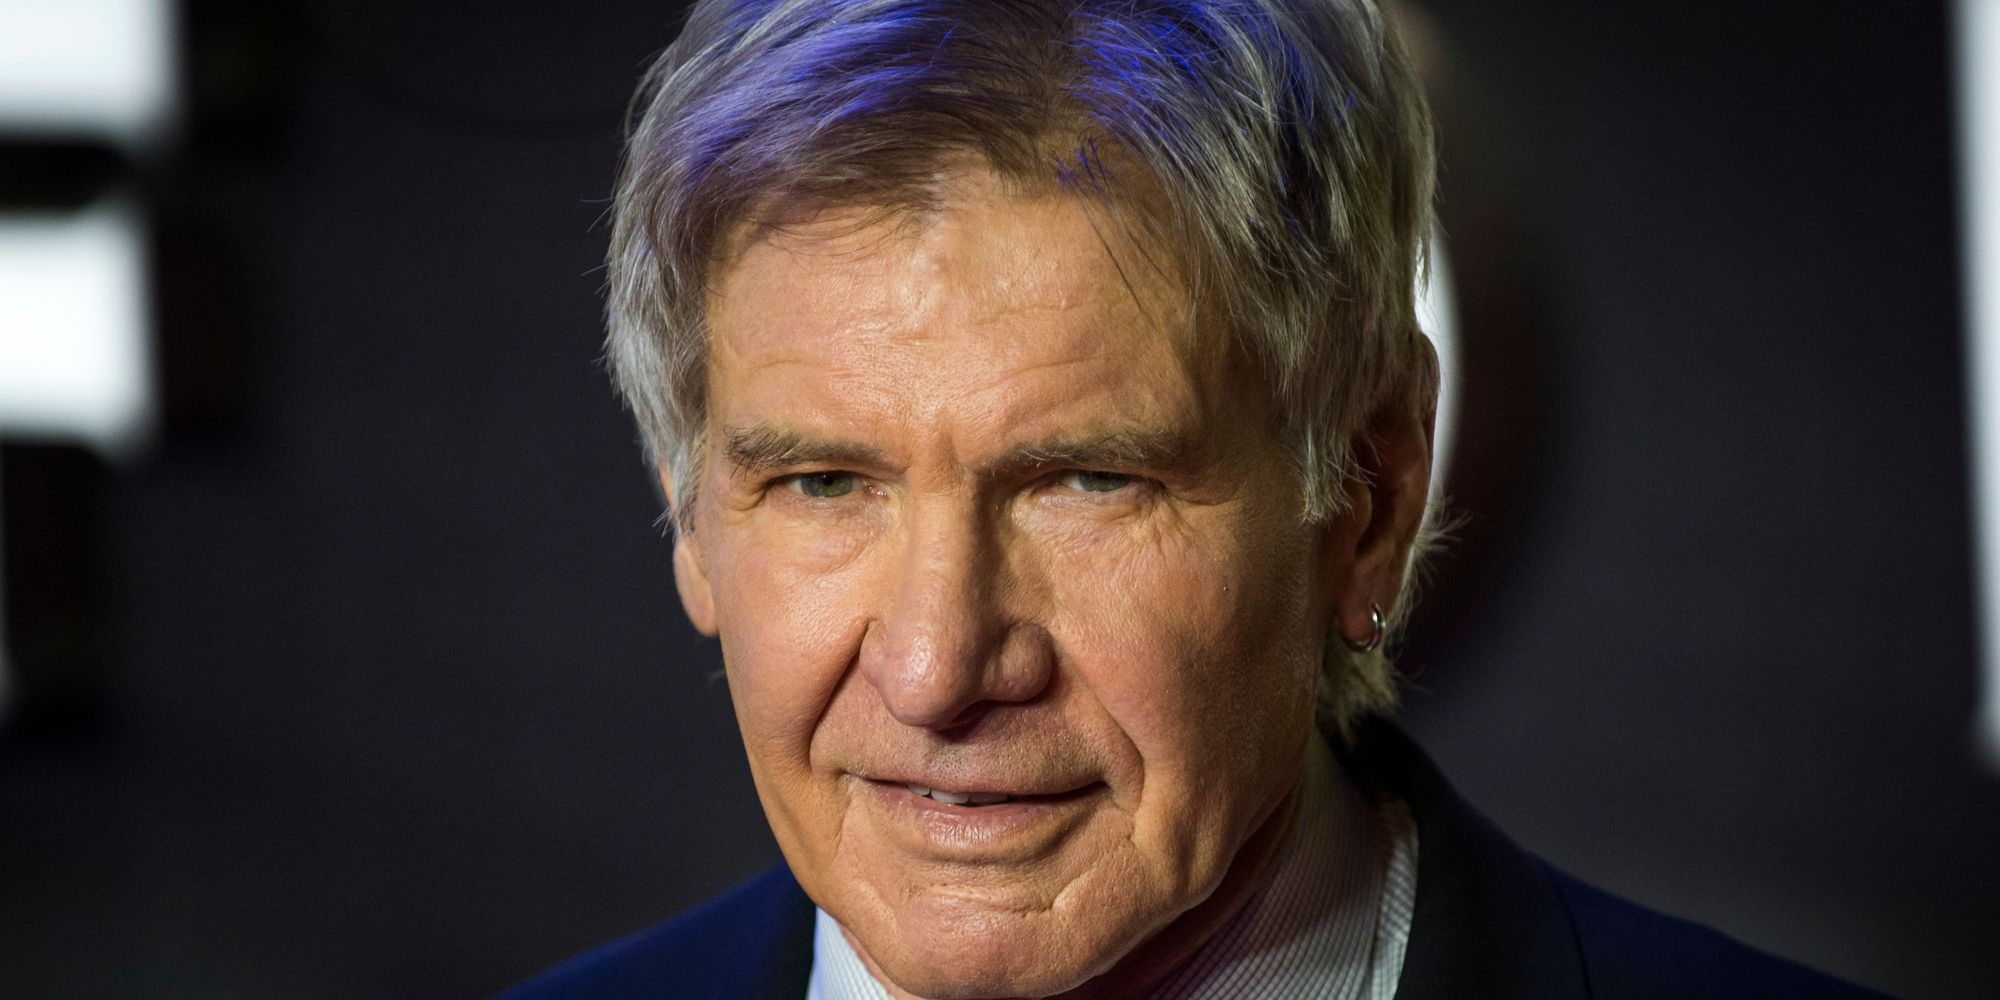 Harrison Ford Nearly Crashes His Plane Into Boeing 737